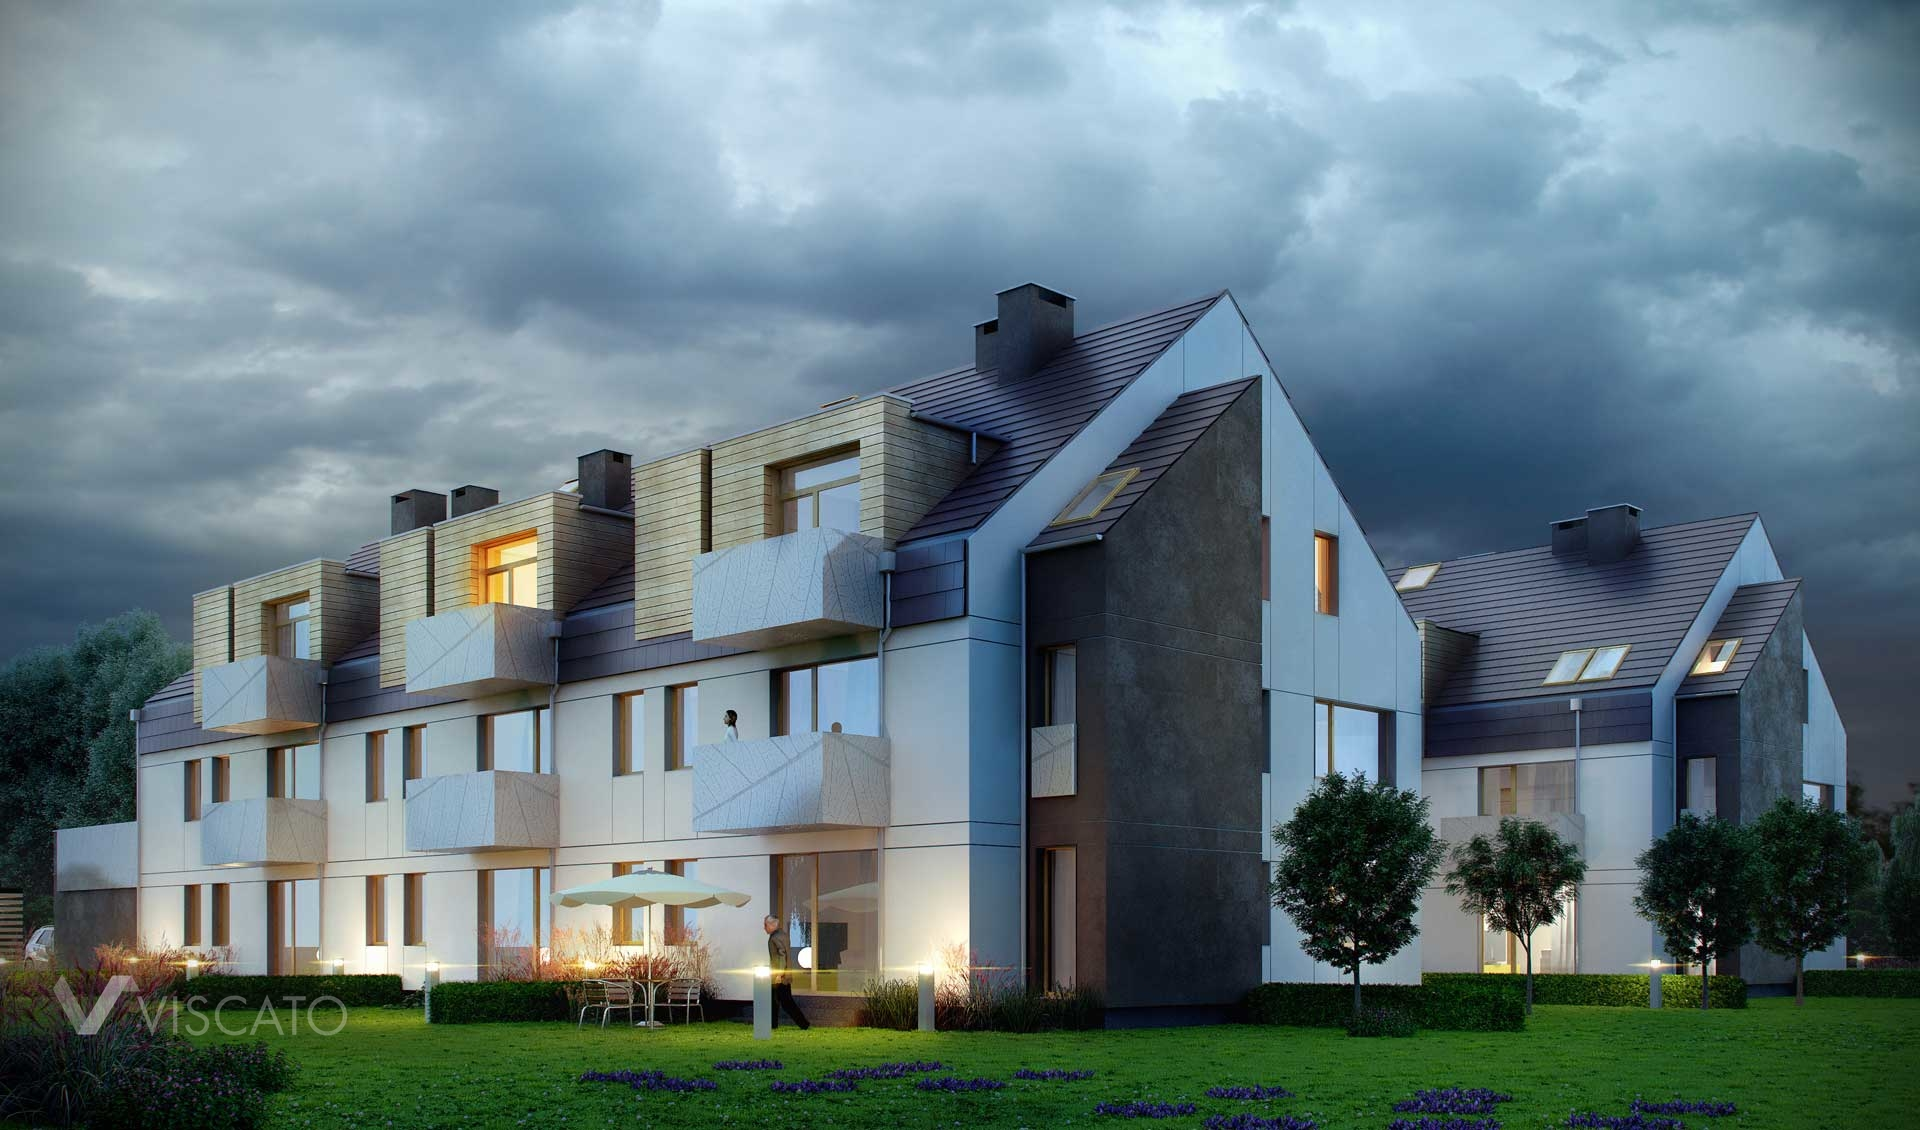 3d Visualization of real estate in Kamieniec Wrocławski. View, in night time, is showing both of buildings, backyard with lights on, small trees and flowers on meadow.